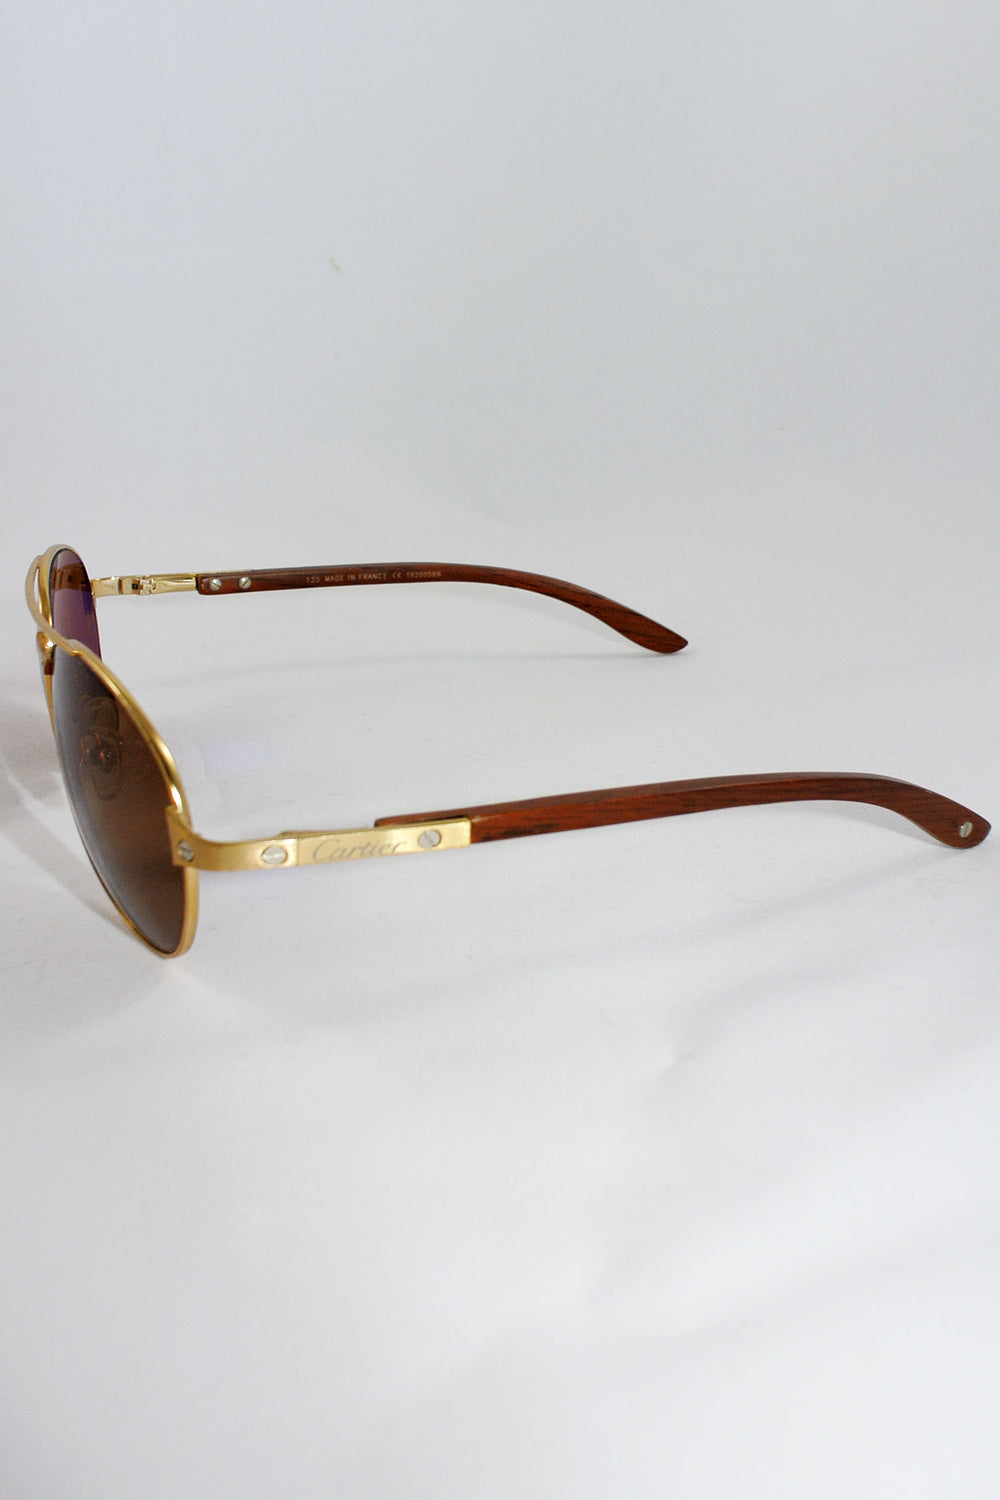 891030c17af Cartier santos dumont gold love sunglasses jpg 1000x1500 Cartier mens  aviators